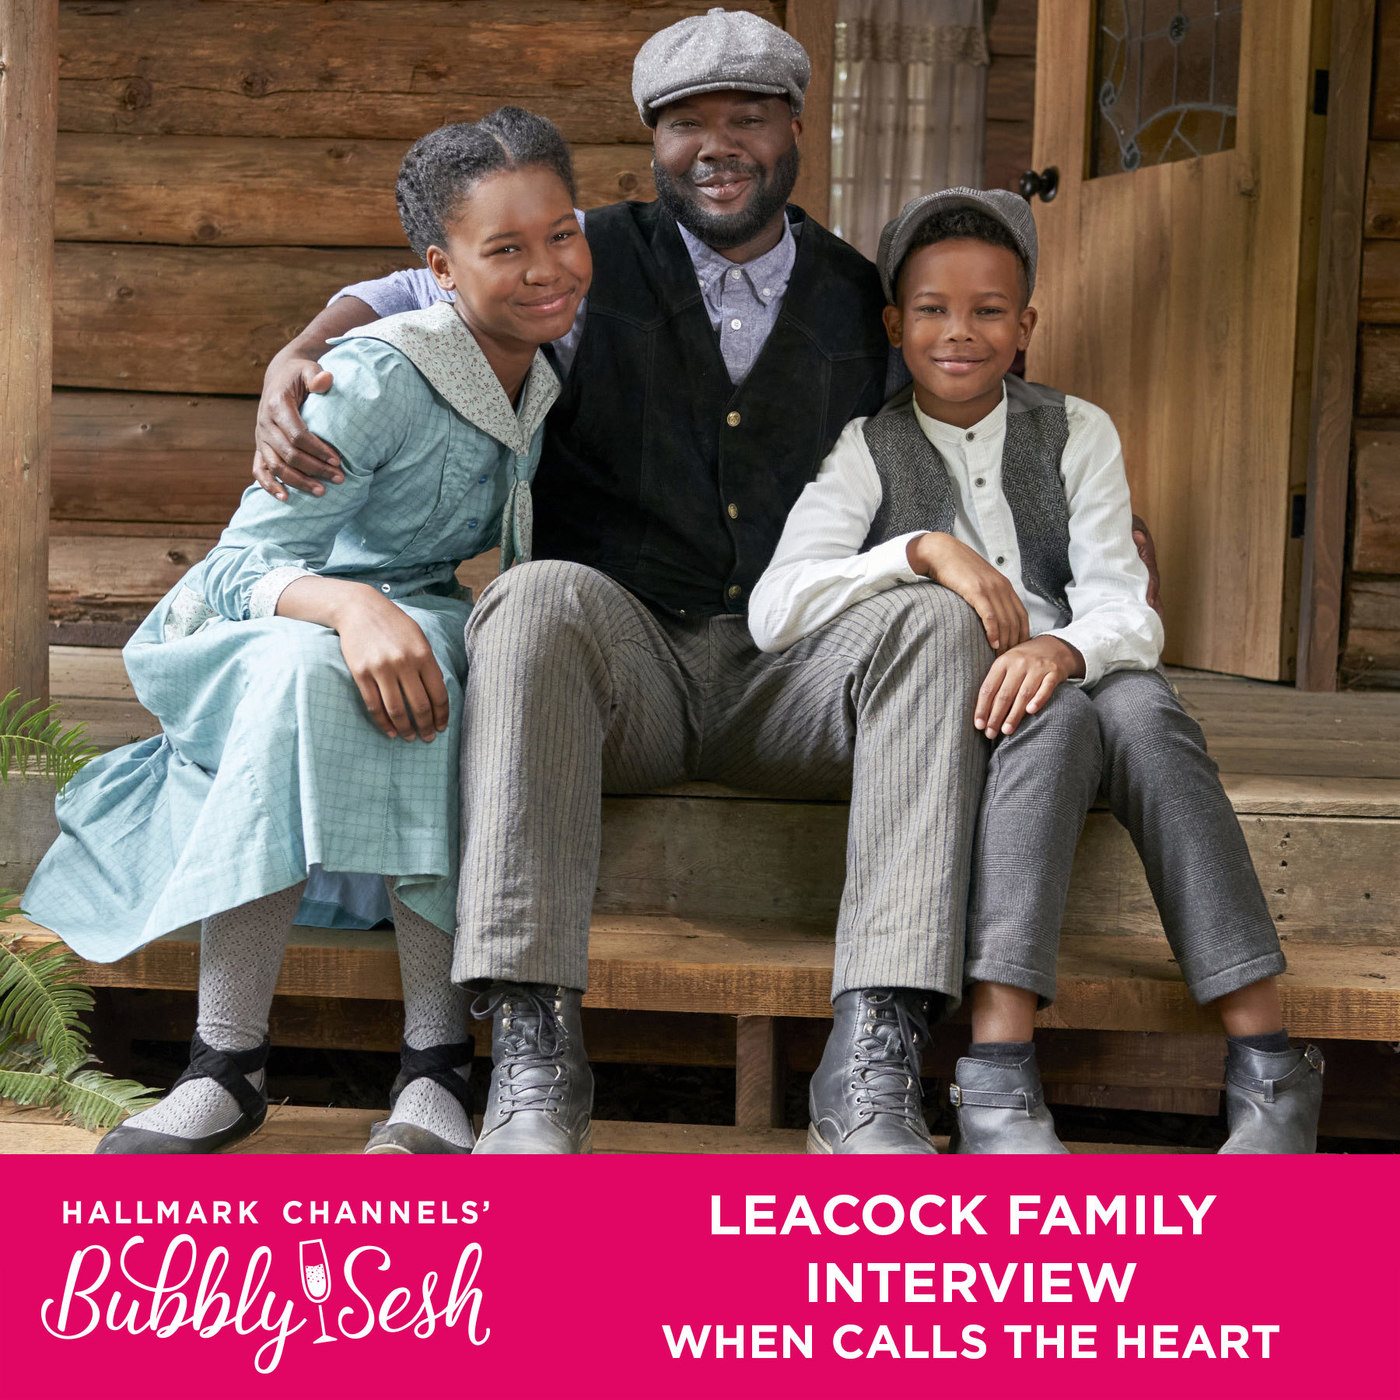 Interview with the Leacock Family: Viv, Vienna and Elias Leacock